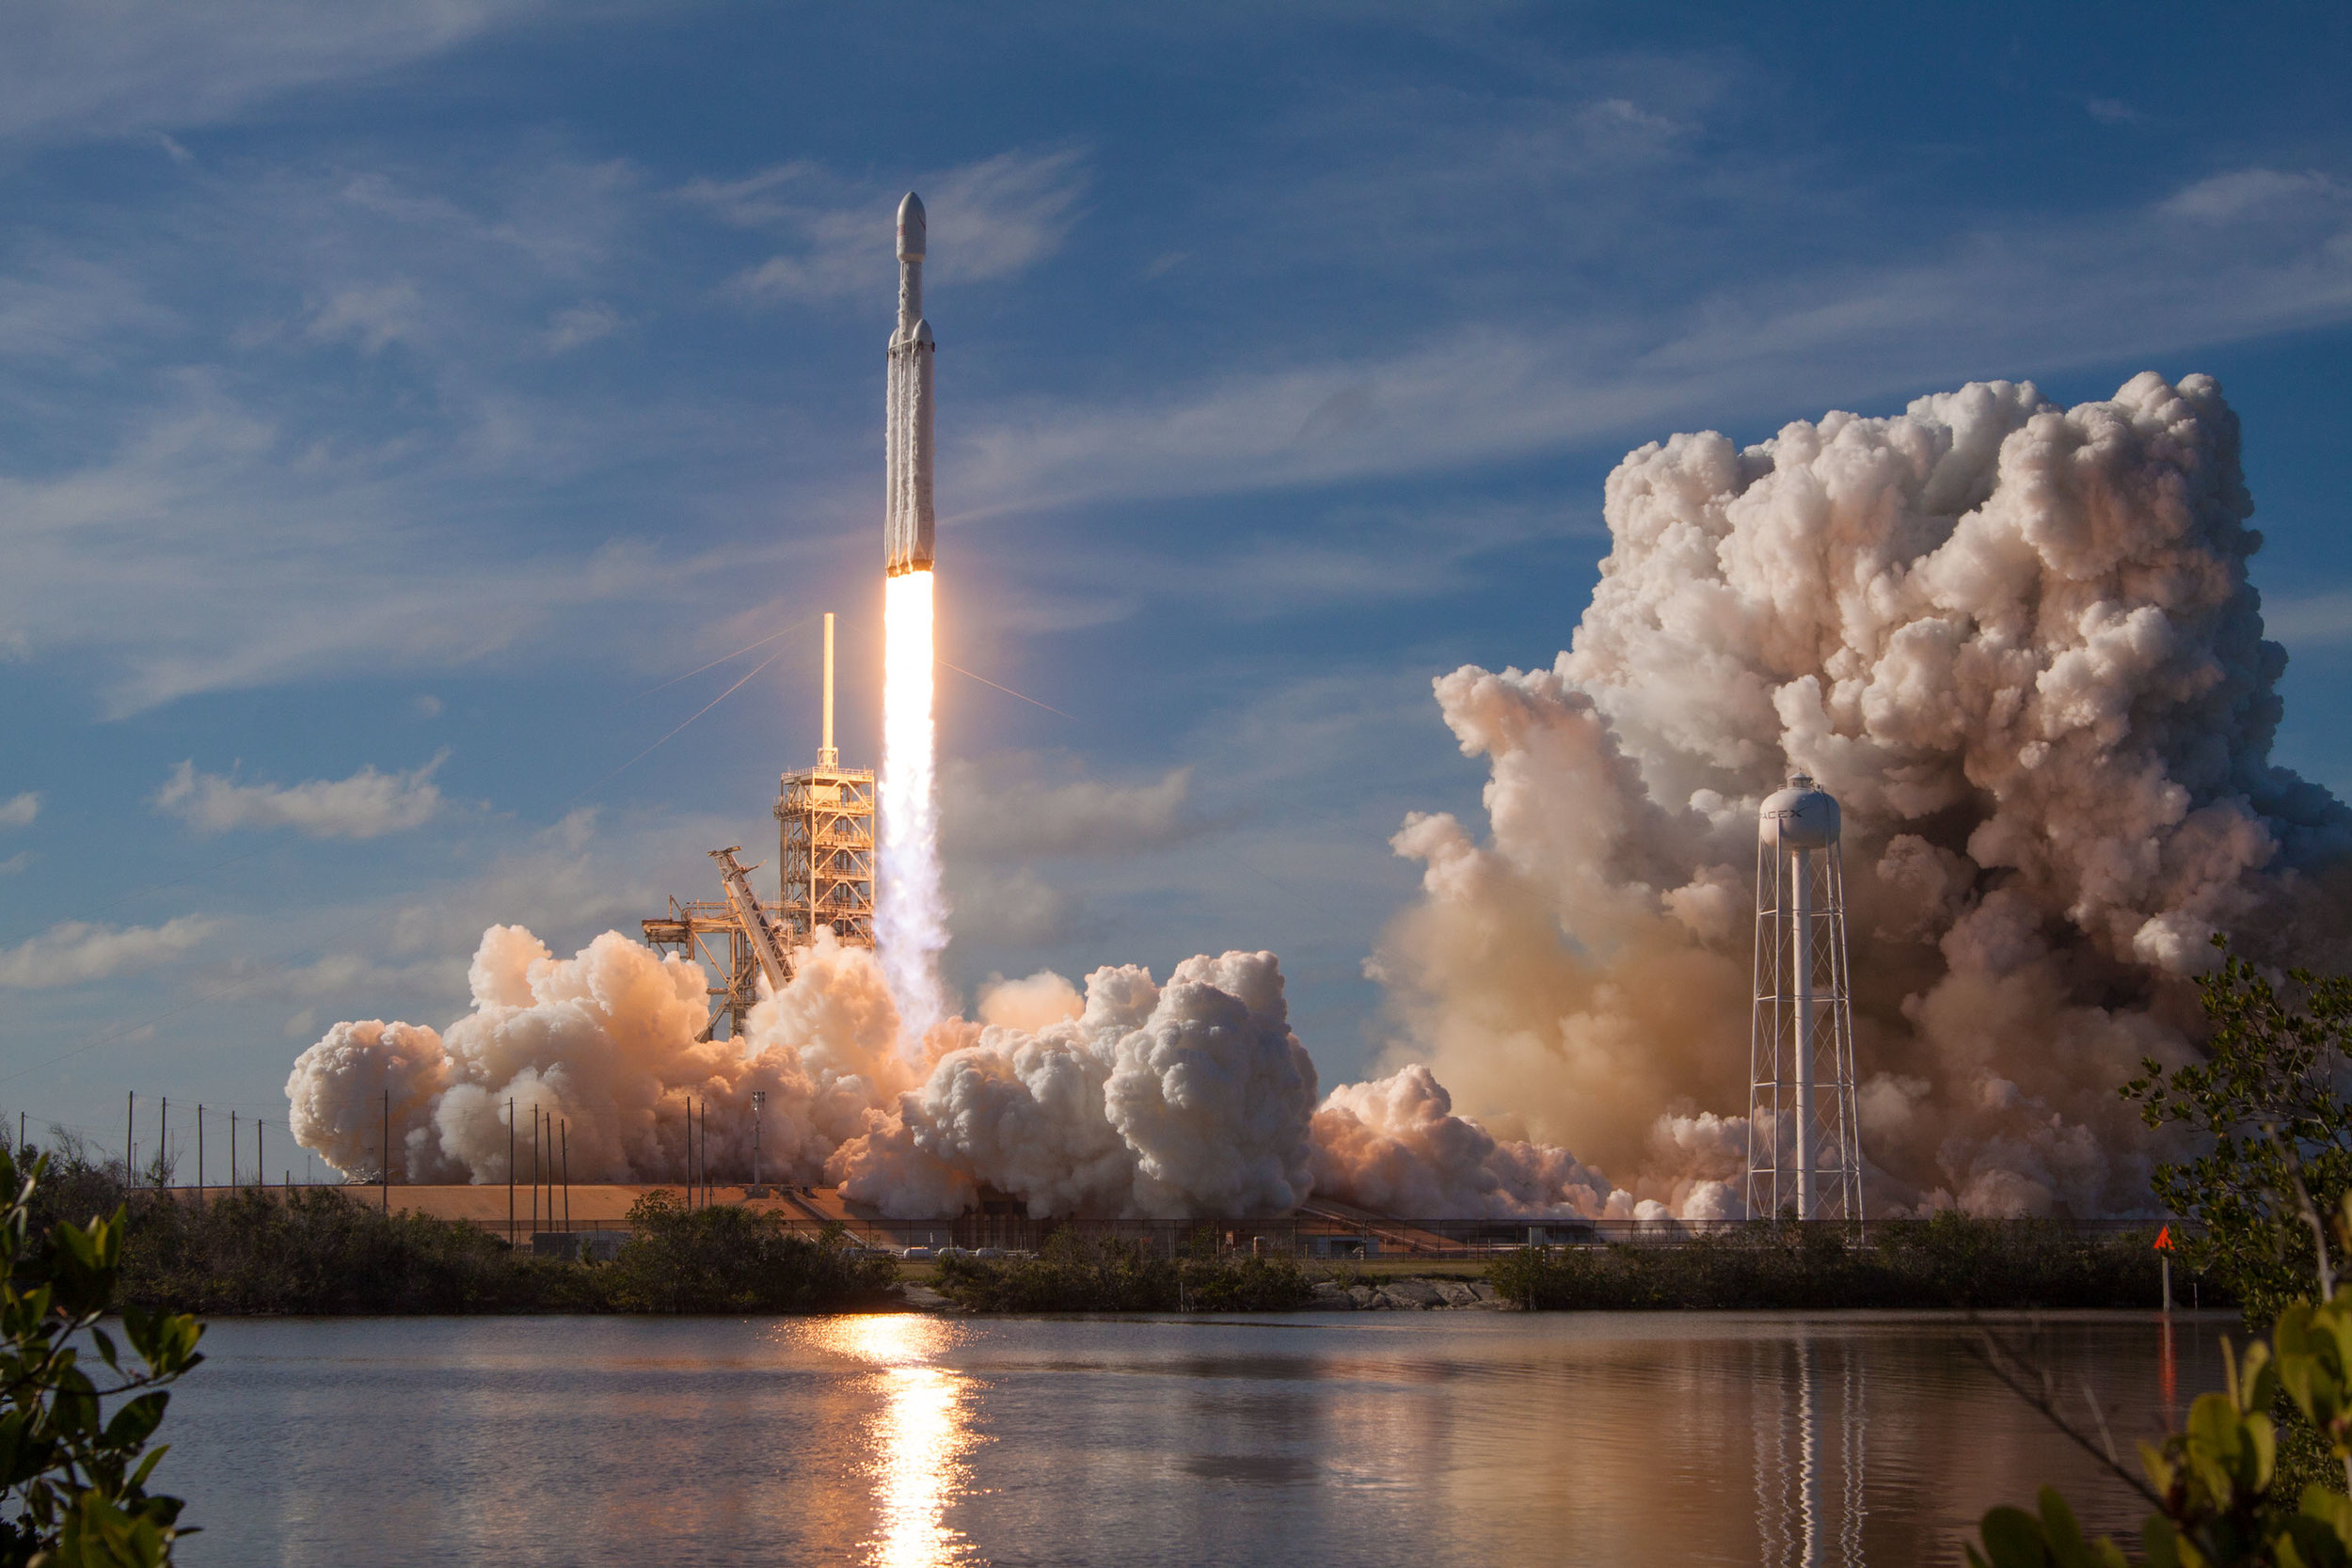 SpaceX's Big Falcon Rocket takes off to resupply the International Space Station. Photo credit: SpaceX